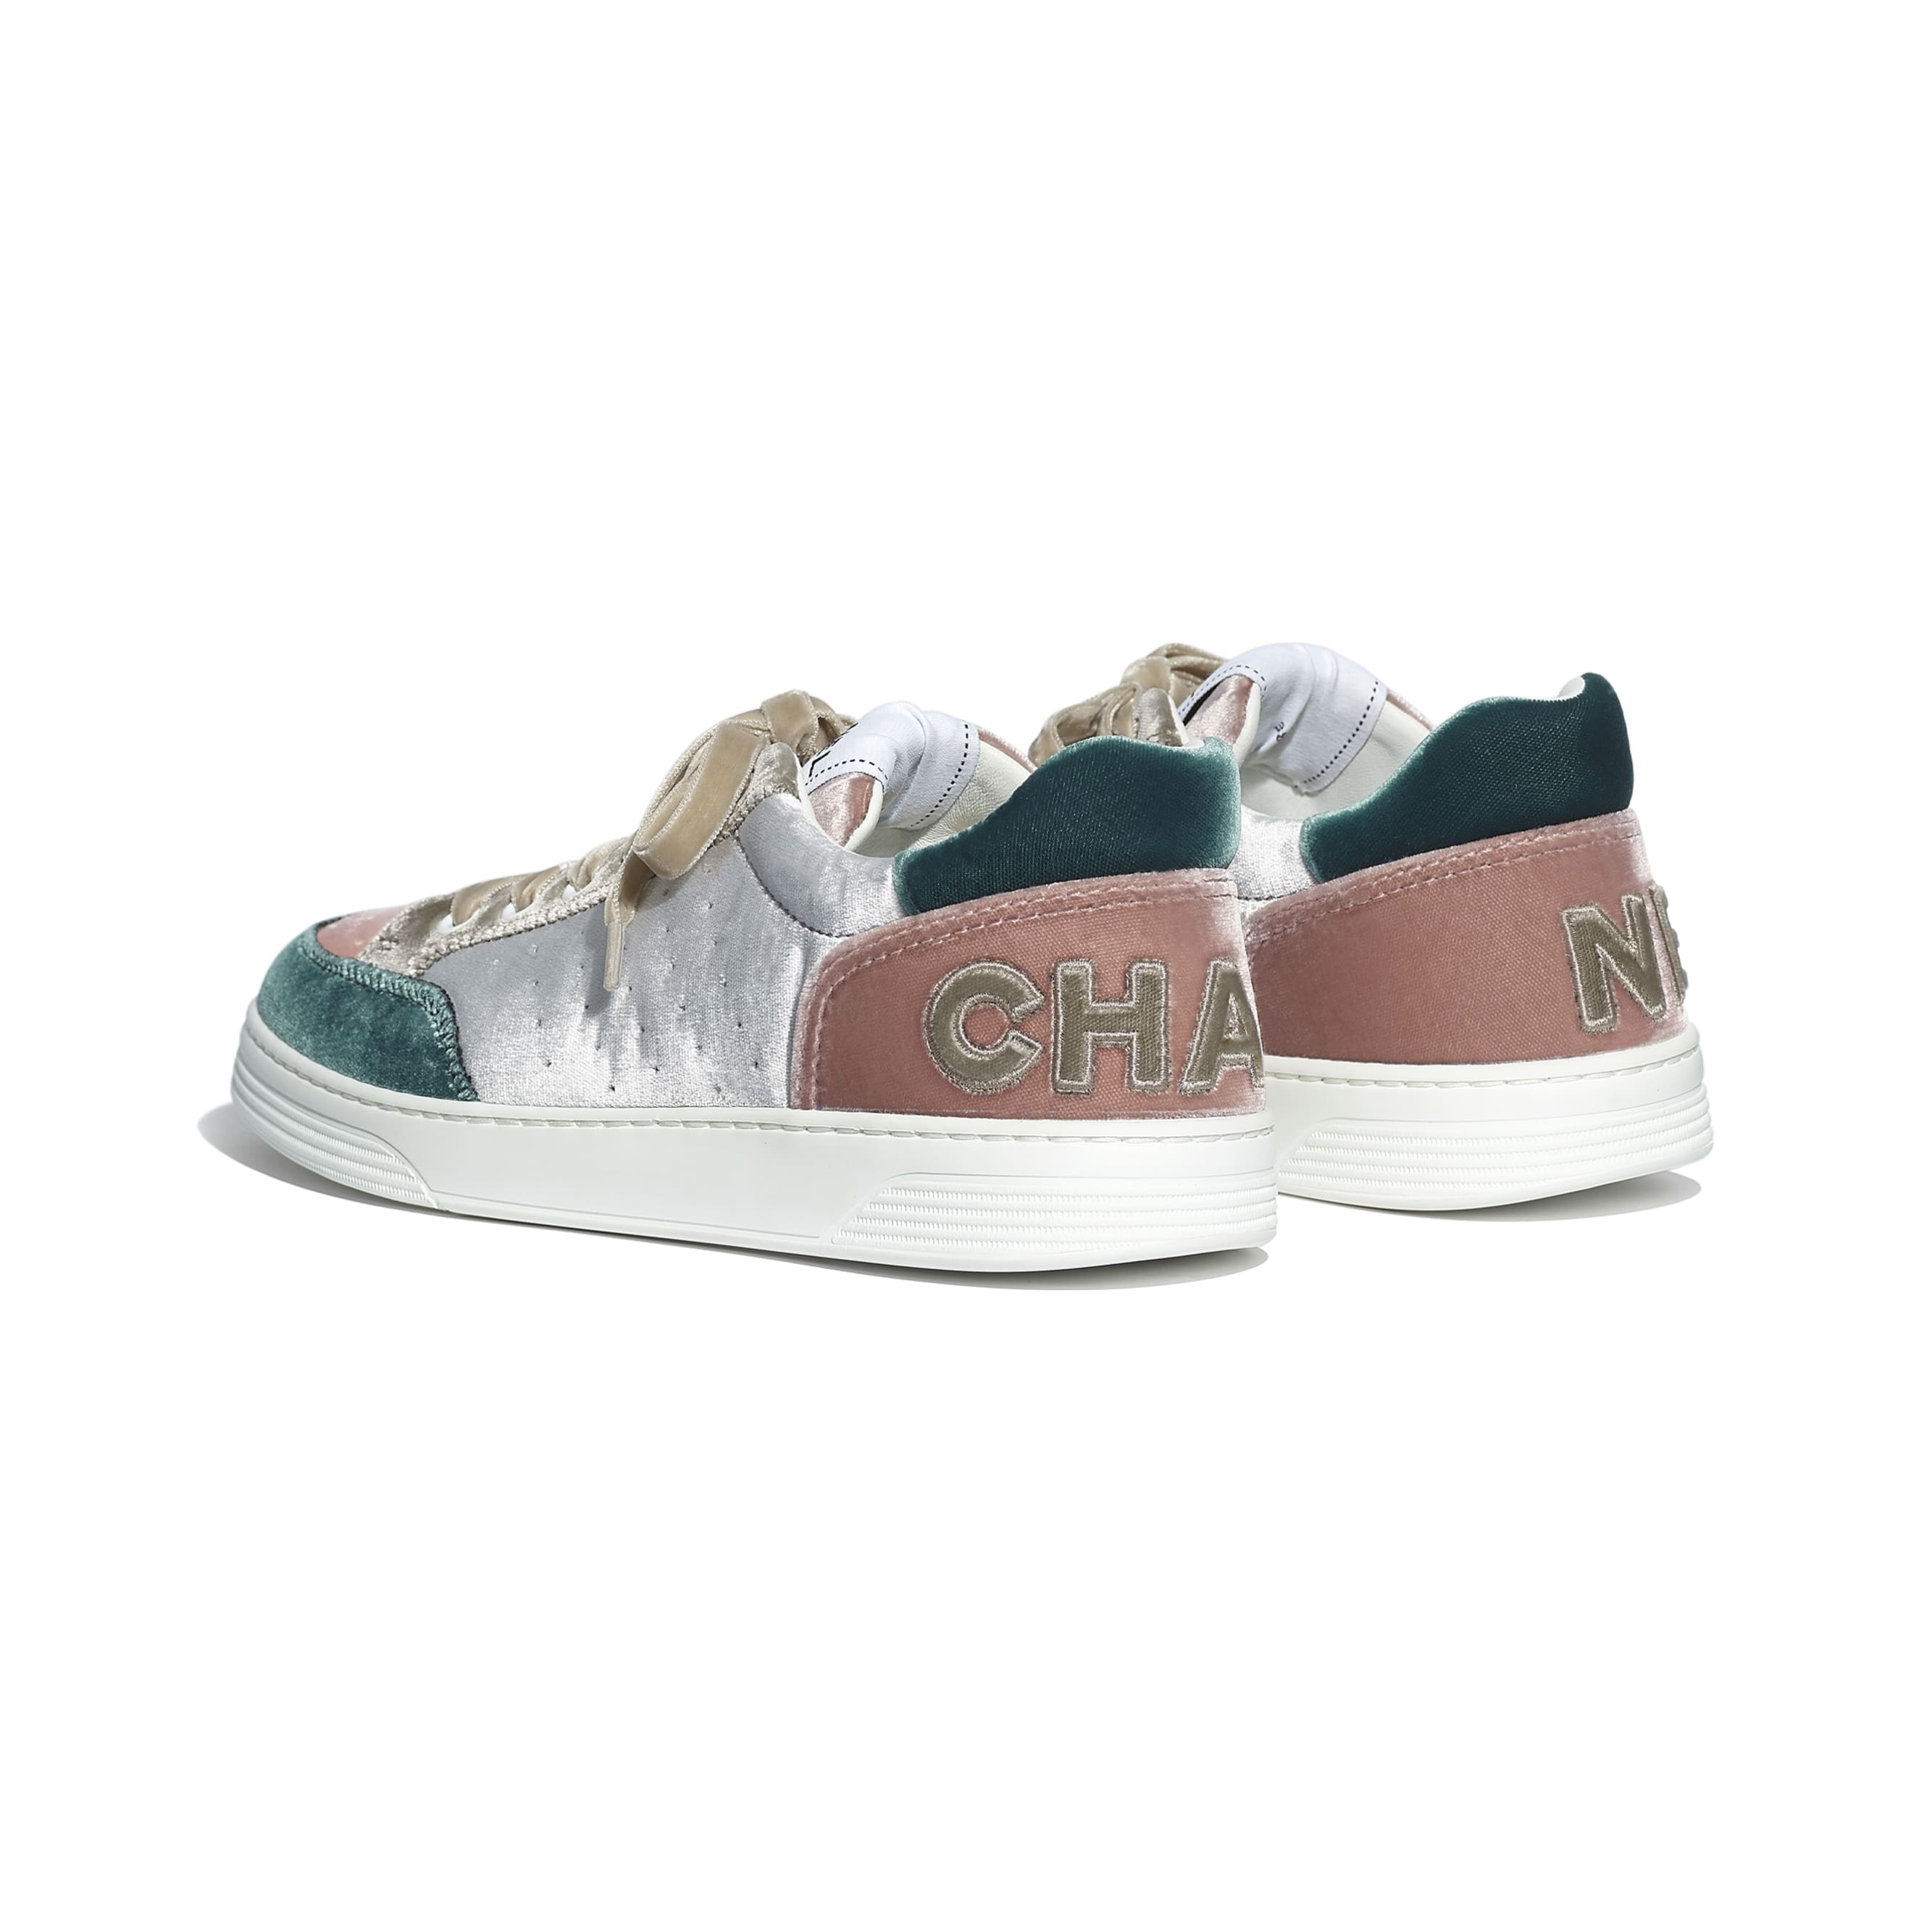 Trainers - Grey, Pink & Green - Velvet - CHANEL - Other view - see standard sized version